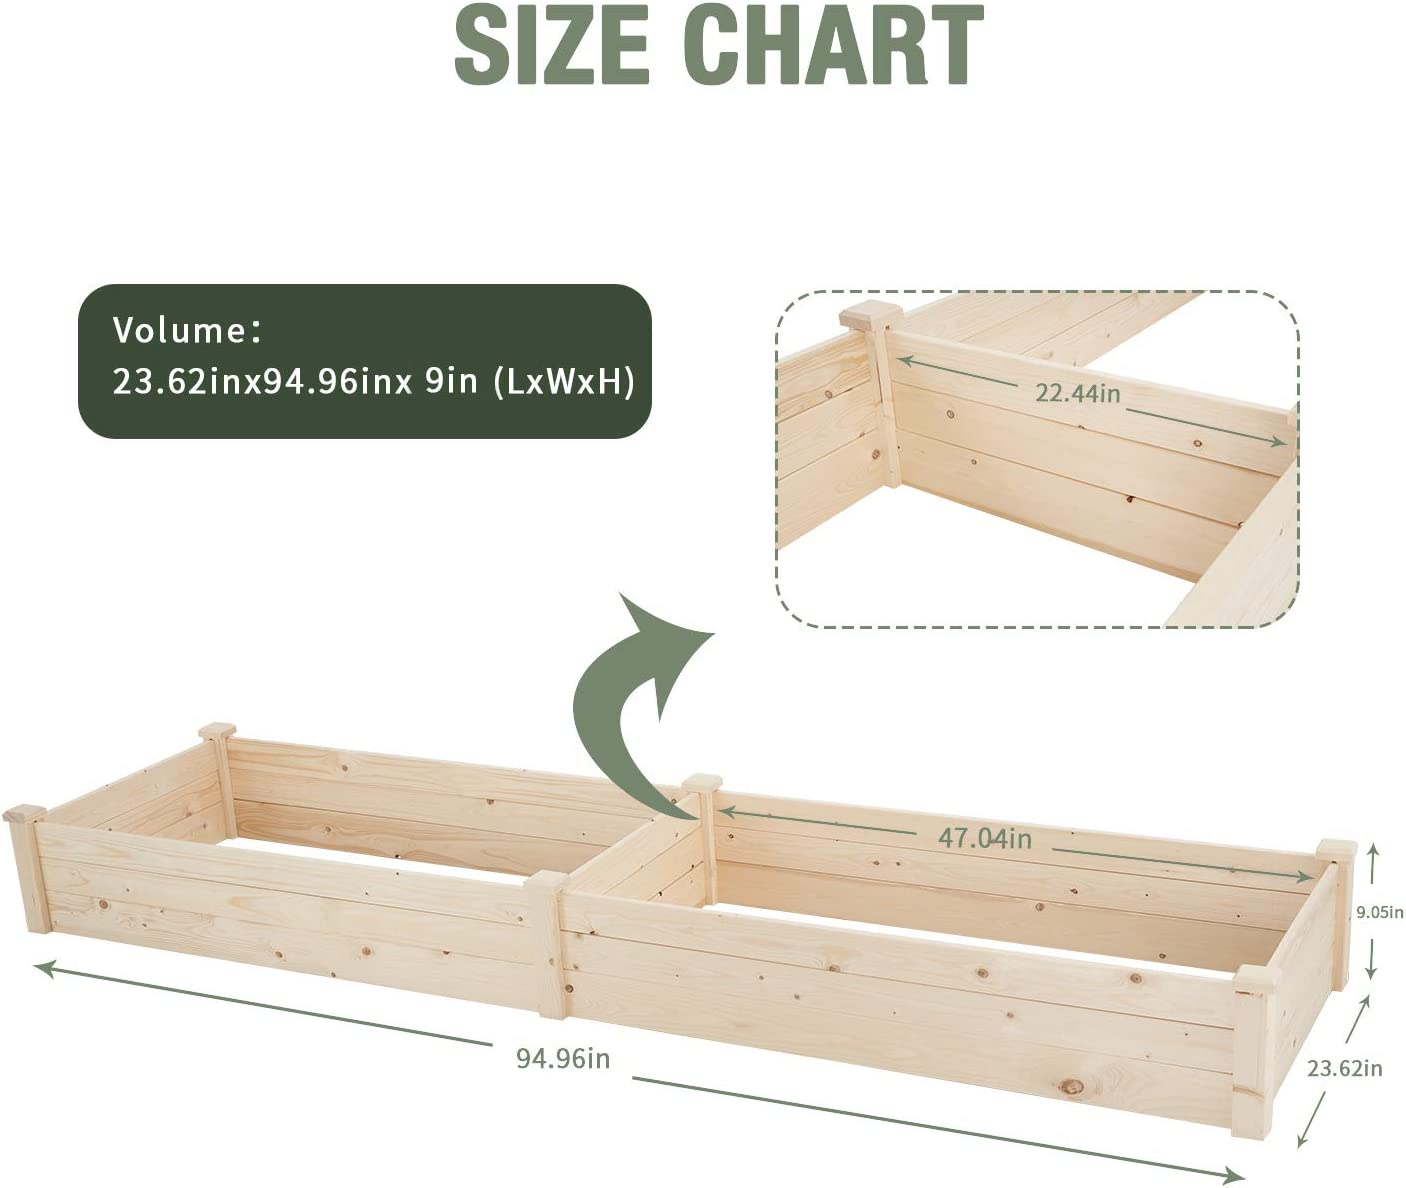 Yiguo Garden Raised Bed 8 FT Planter Box Kit for Vegetable and Flower Wooden Planting Bed Easy Placement for Garden//Balcony//Patio